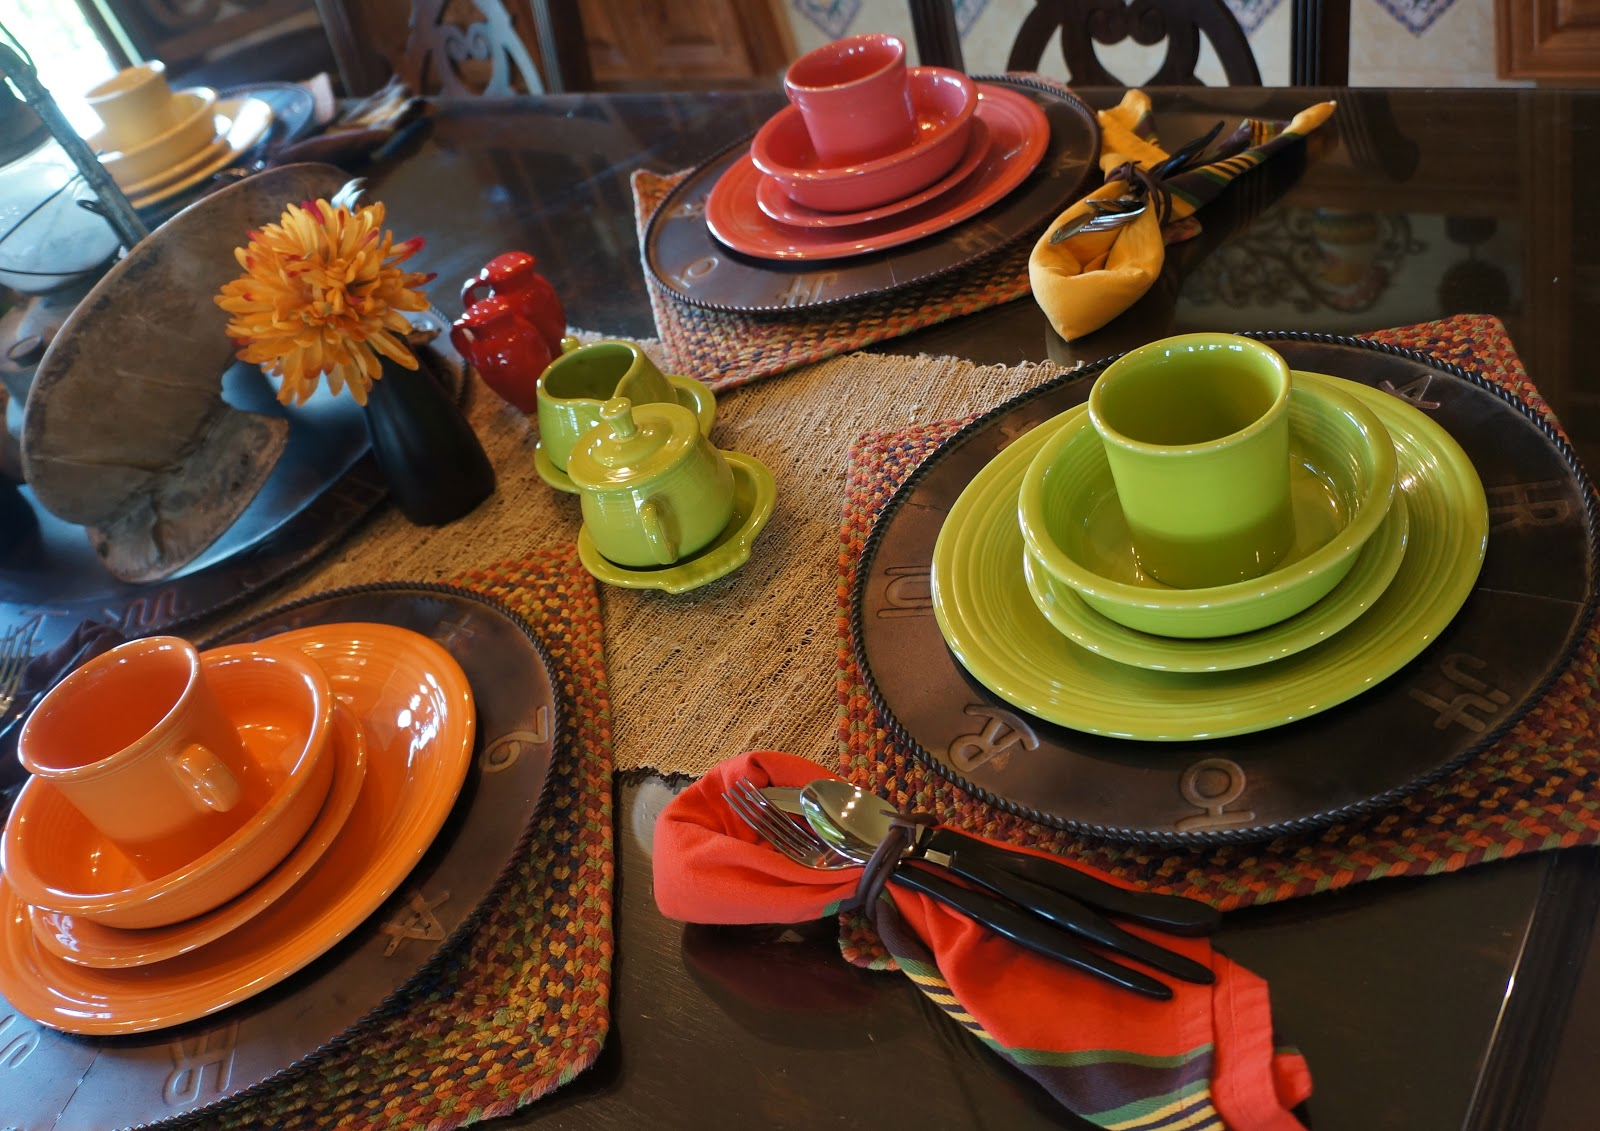 Remarkable Fiestaware Place Settings Gallery - Best Image Engine . : fiestaware table settings - Pezcame.Com